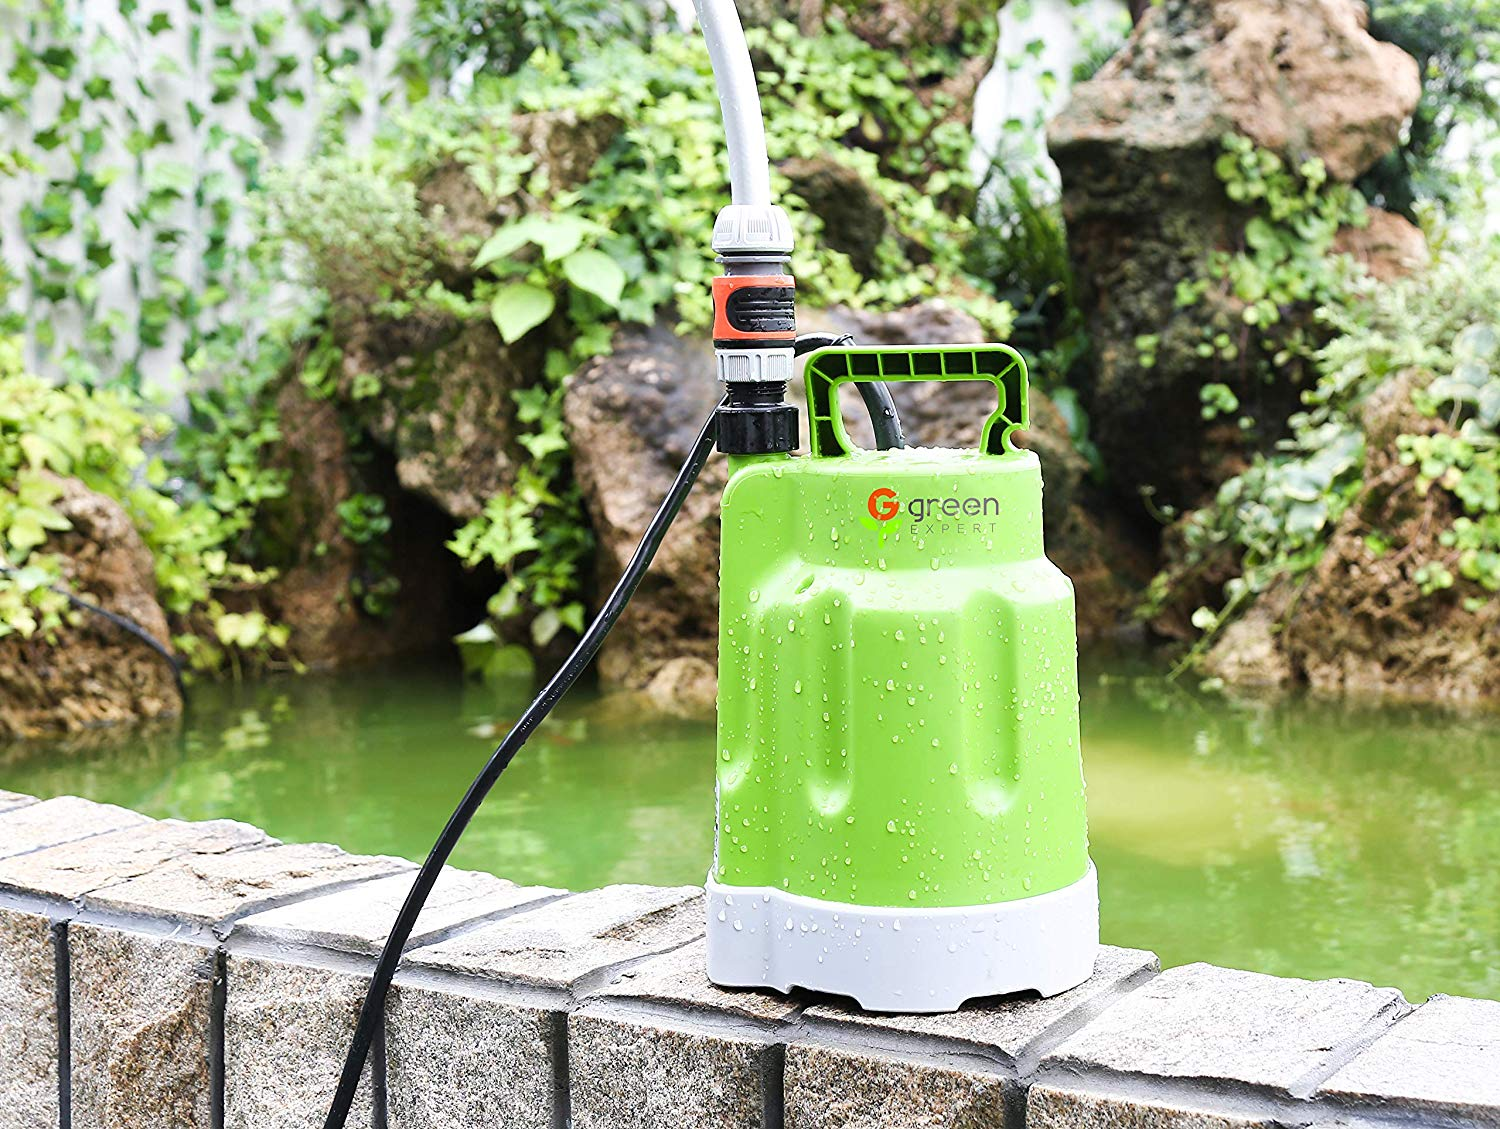 Submersible Water Pumps – Reviews & Buying Guide